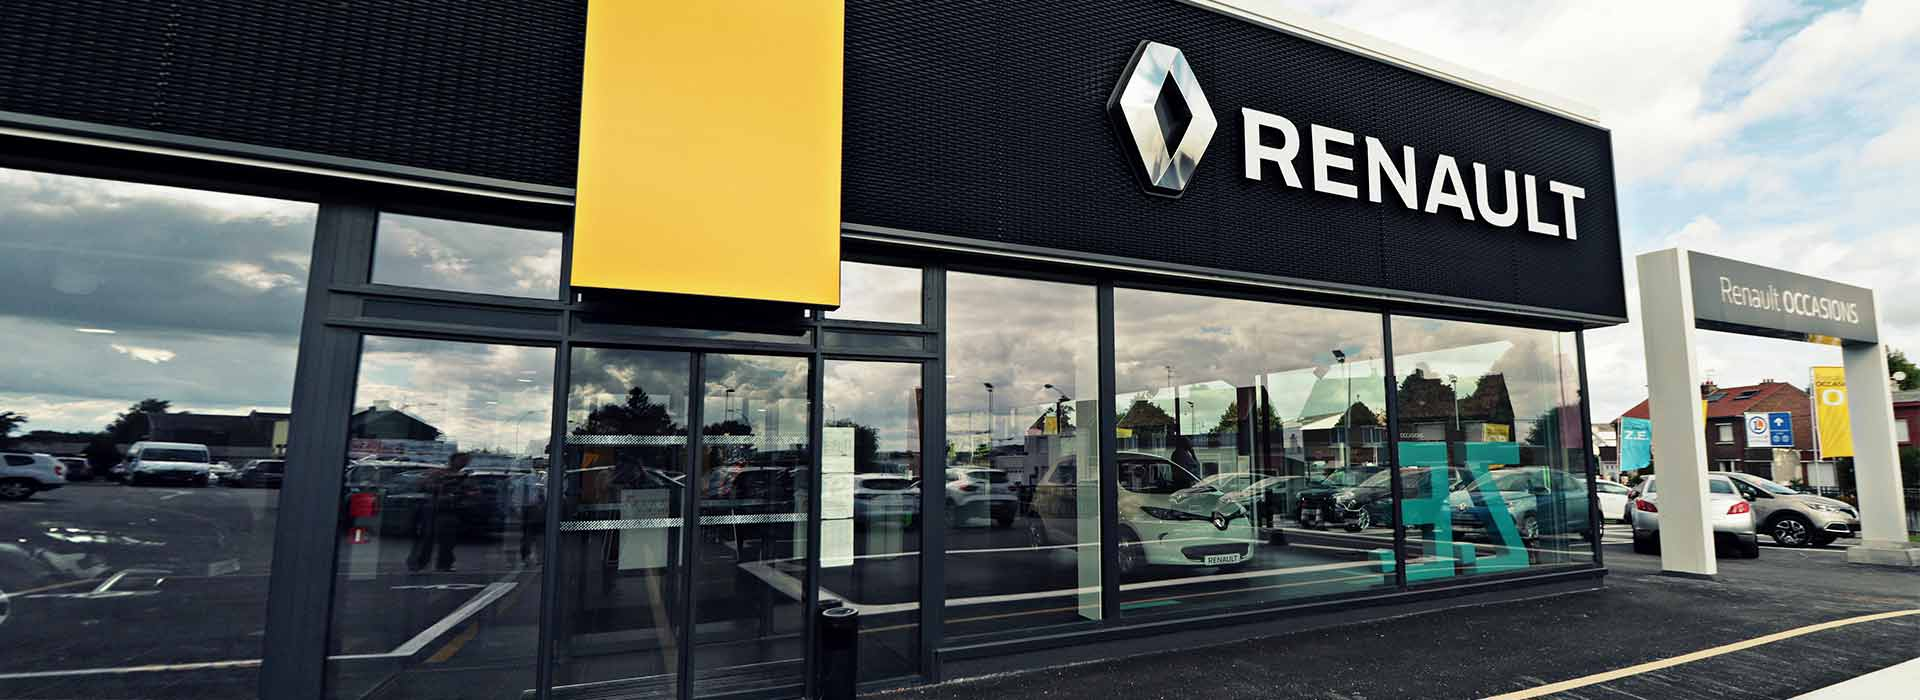 Renault arras concessionnaire garage pas de calais 62 for Garage new s villejuif